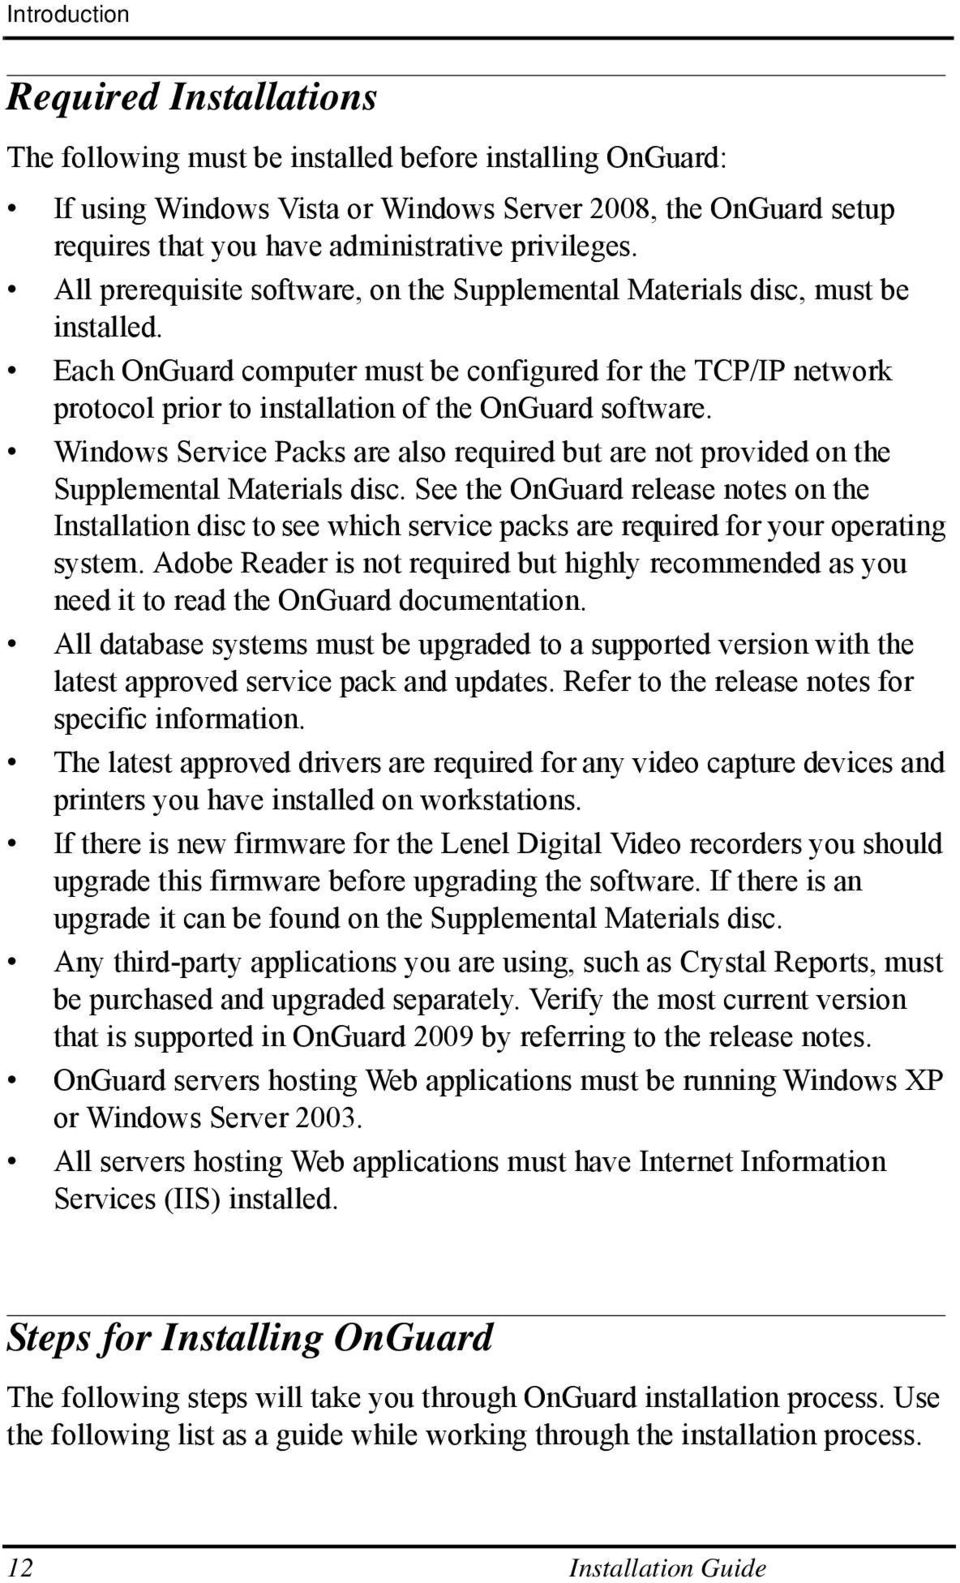 Each OnGuard computer must be configured for the TCP/IP network protocol prior to installation of the OnGuard software.